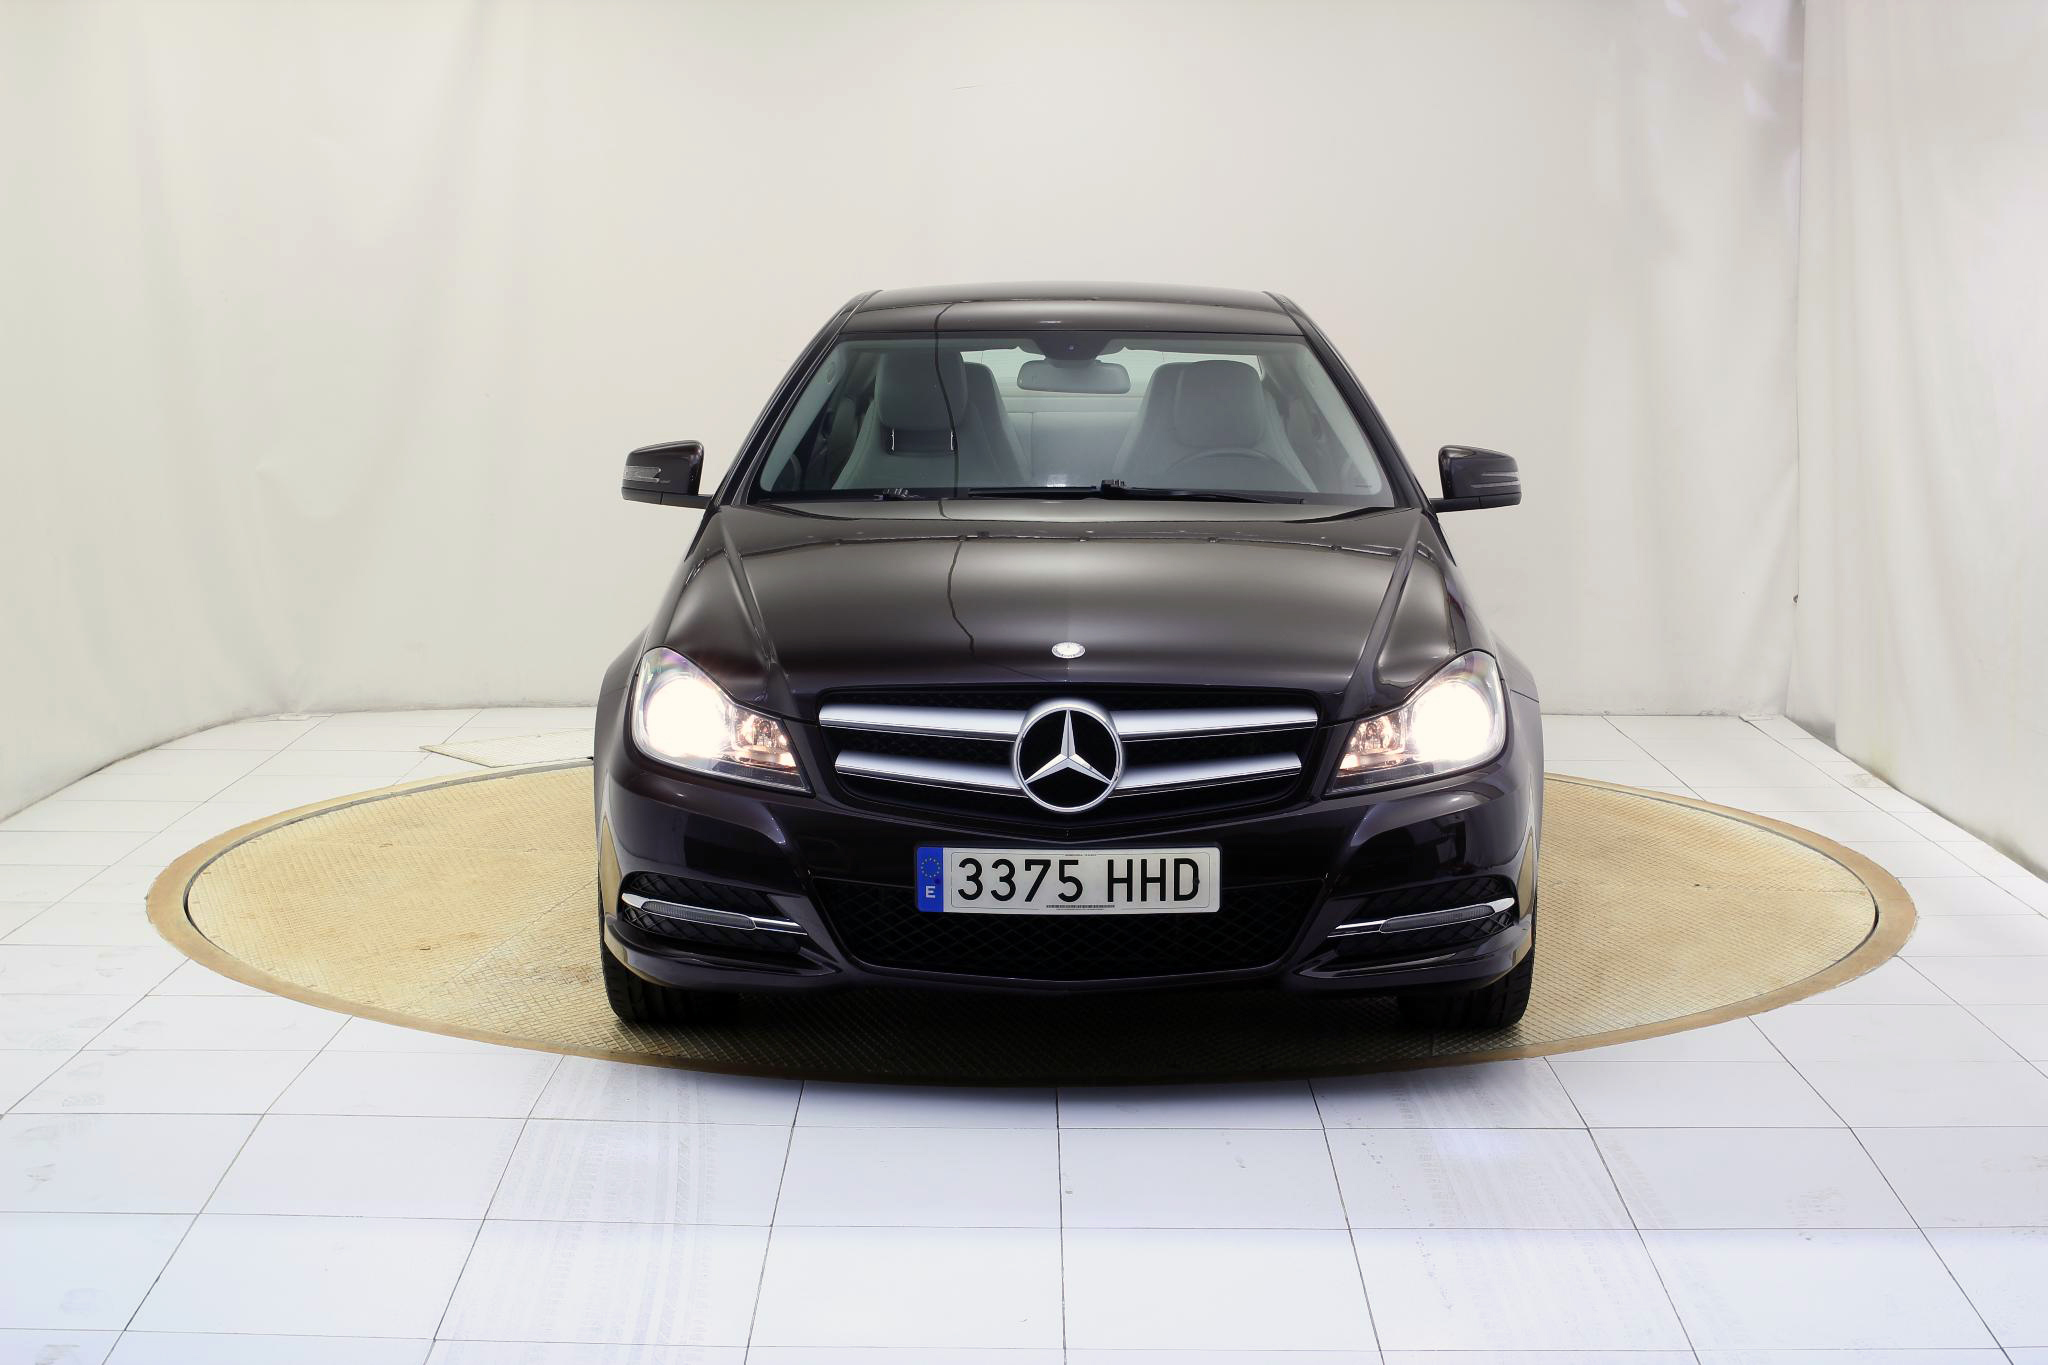 Mercedes-Benz Clase C CLASE C 350 COUPE BLUE EFFICIENCY AUTO imagen 2